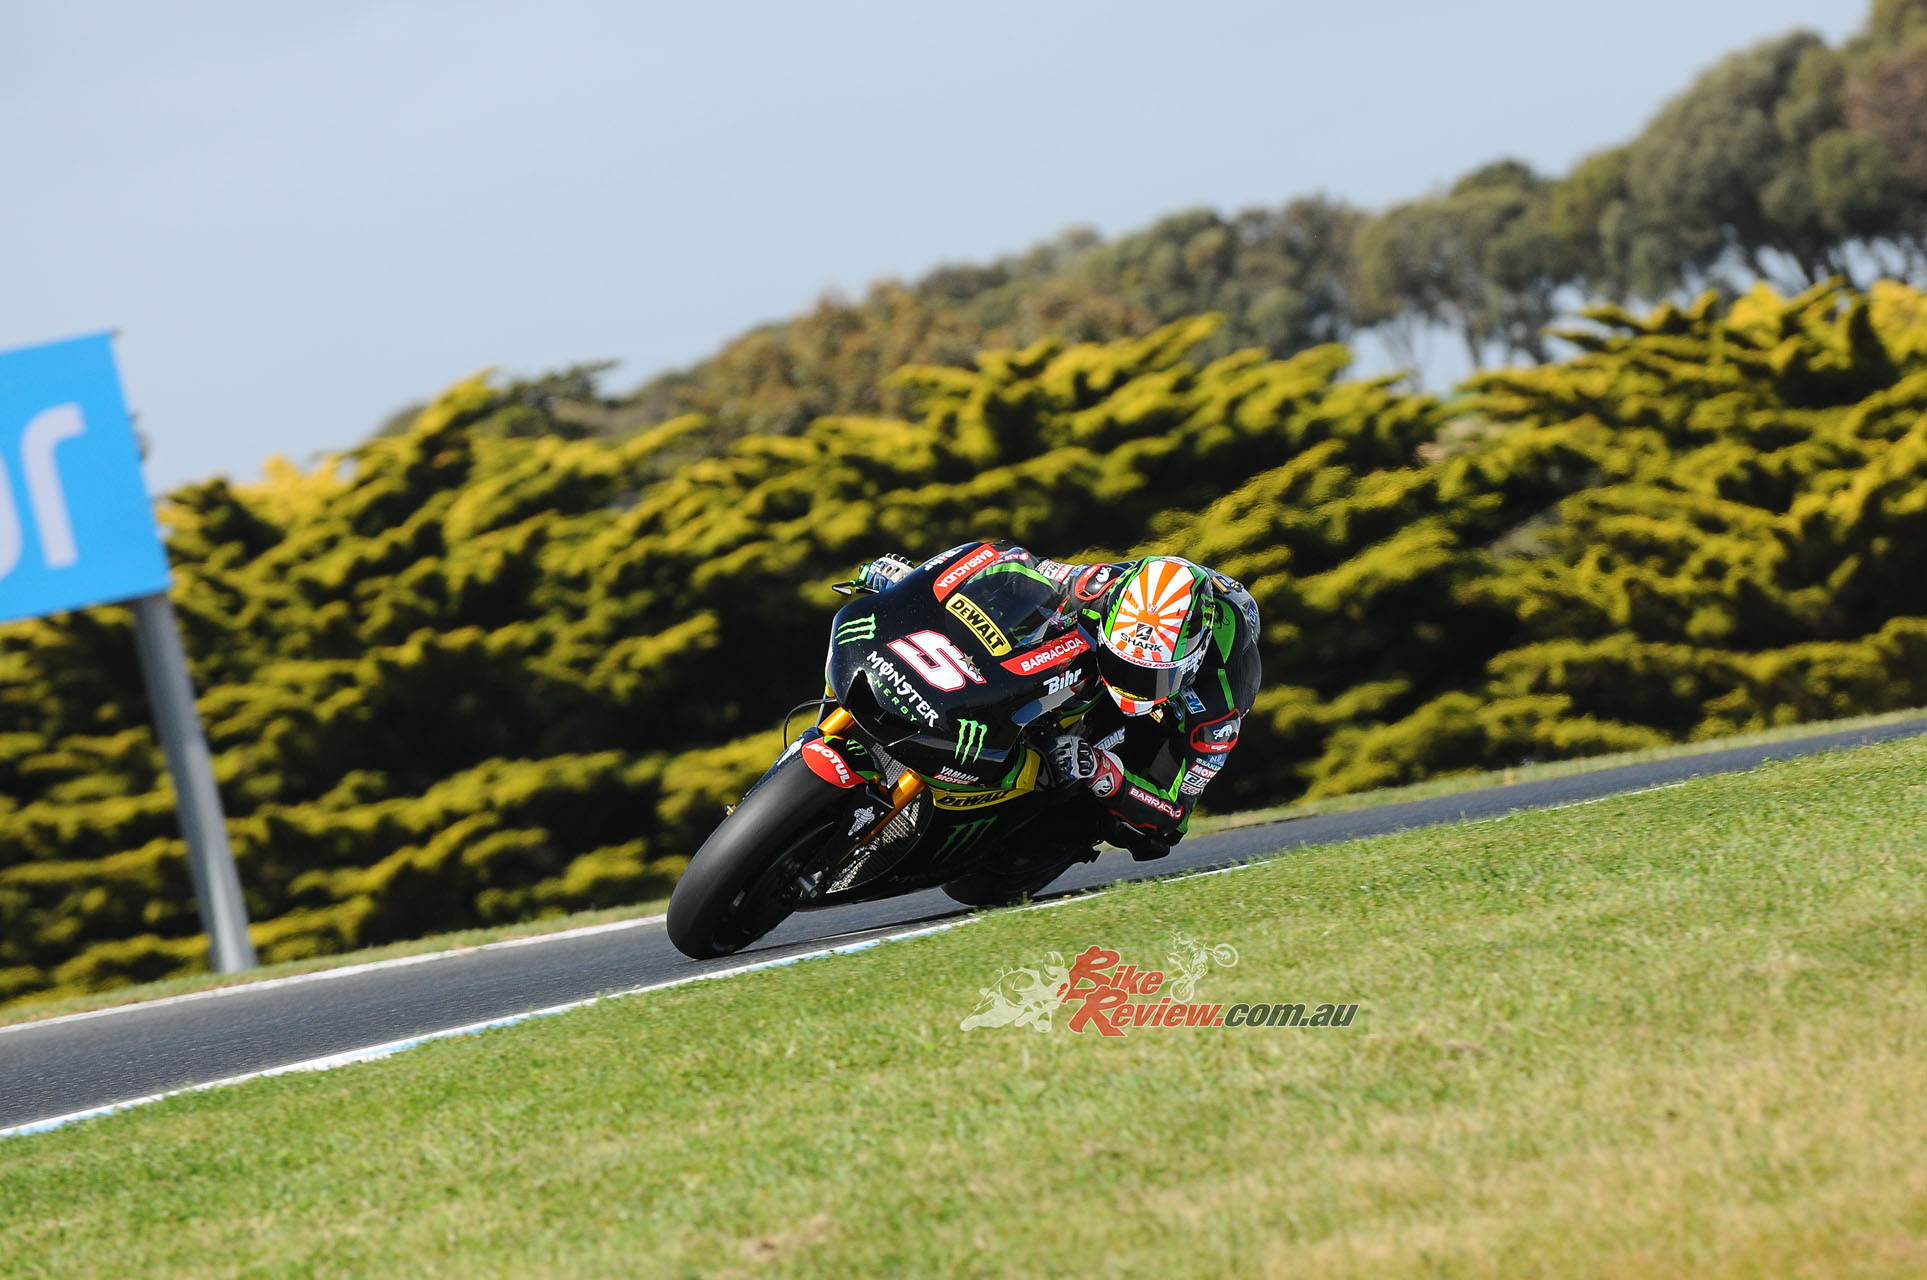 Phillip Island Motogp Race Times | MotoGP 2017 Info, Video, Points Table